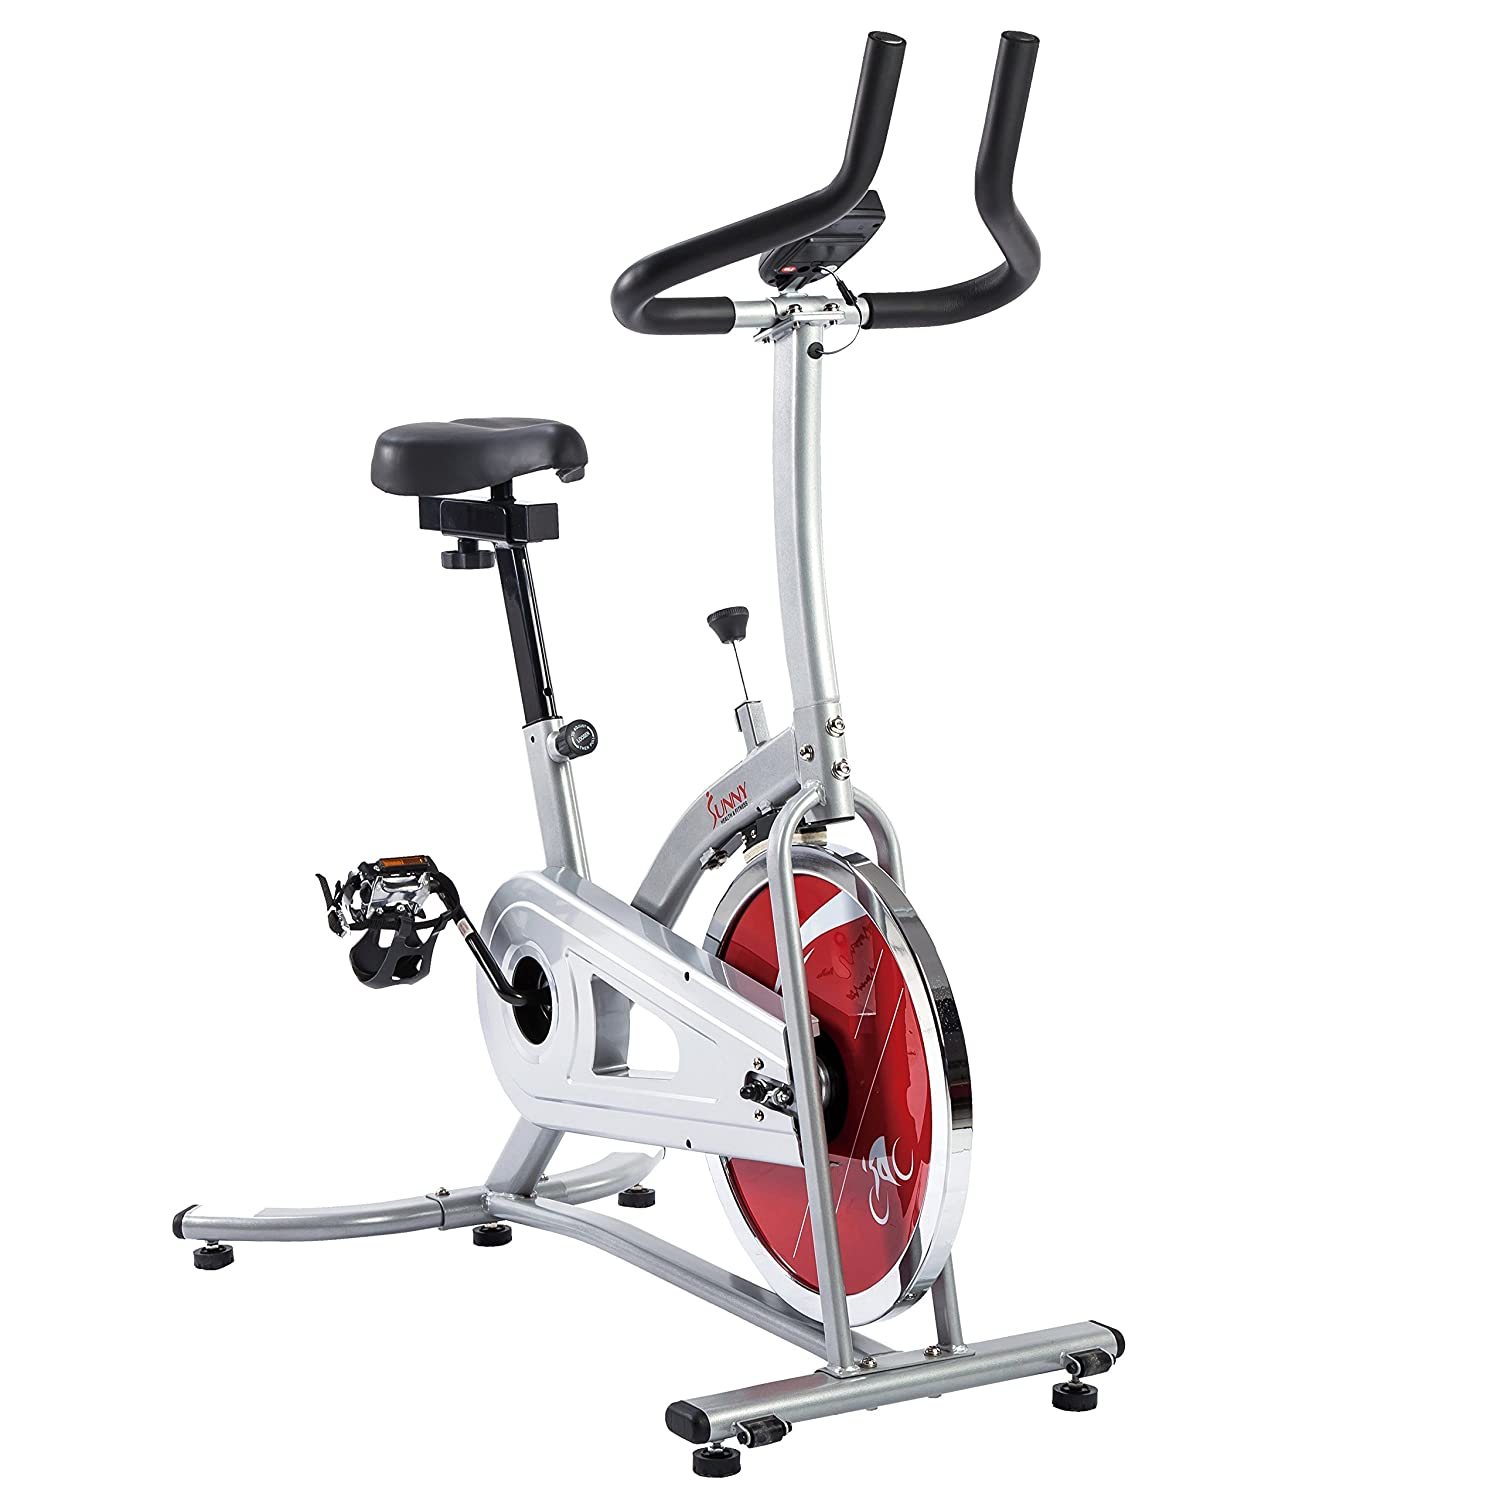 Sunny Health & Fitness SF-B1203 Indoor Cycle Review